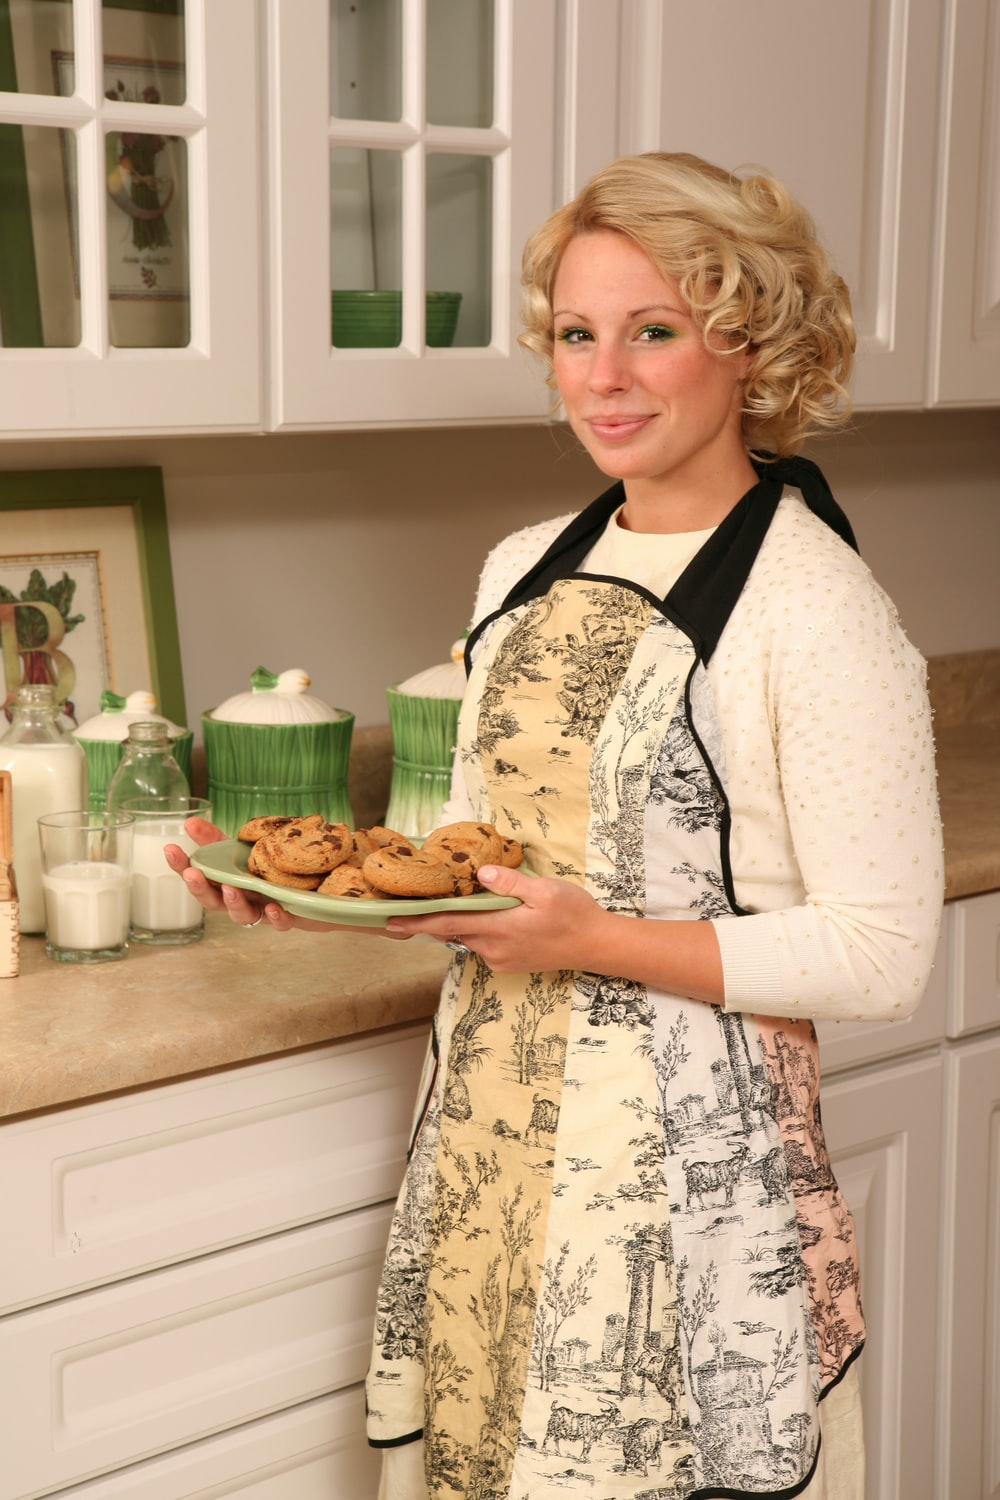 woman holding white plate with cookies